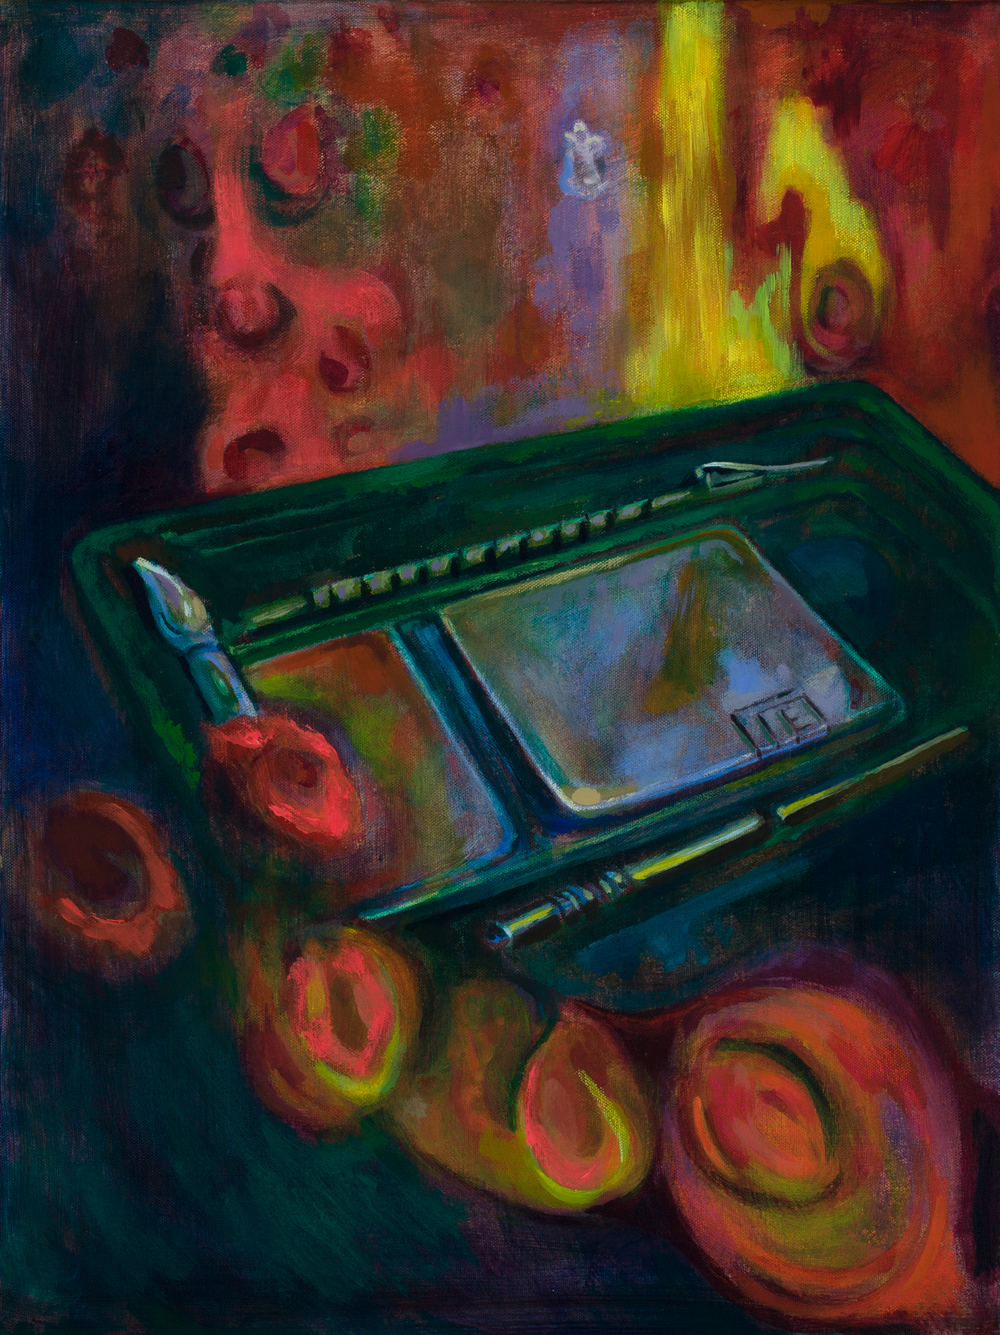 My Father's Blood Draw Kit. Betsy Andersen. Acrylic on canvas. Fall 2015 Intima.